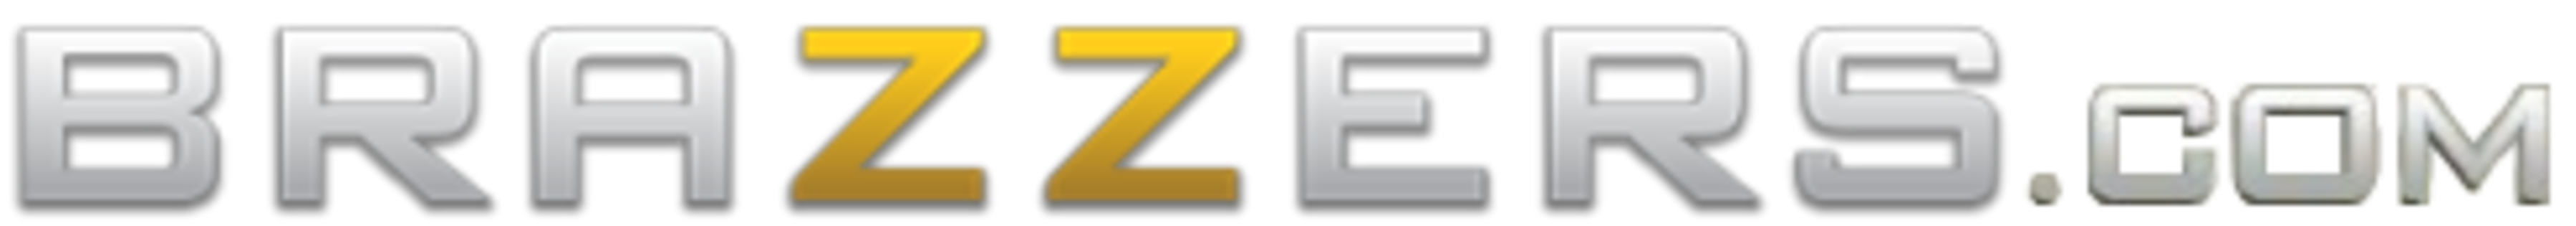 Brazzers logo png. Meme templates know your